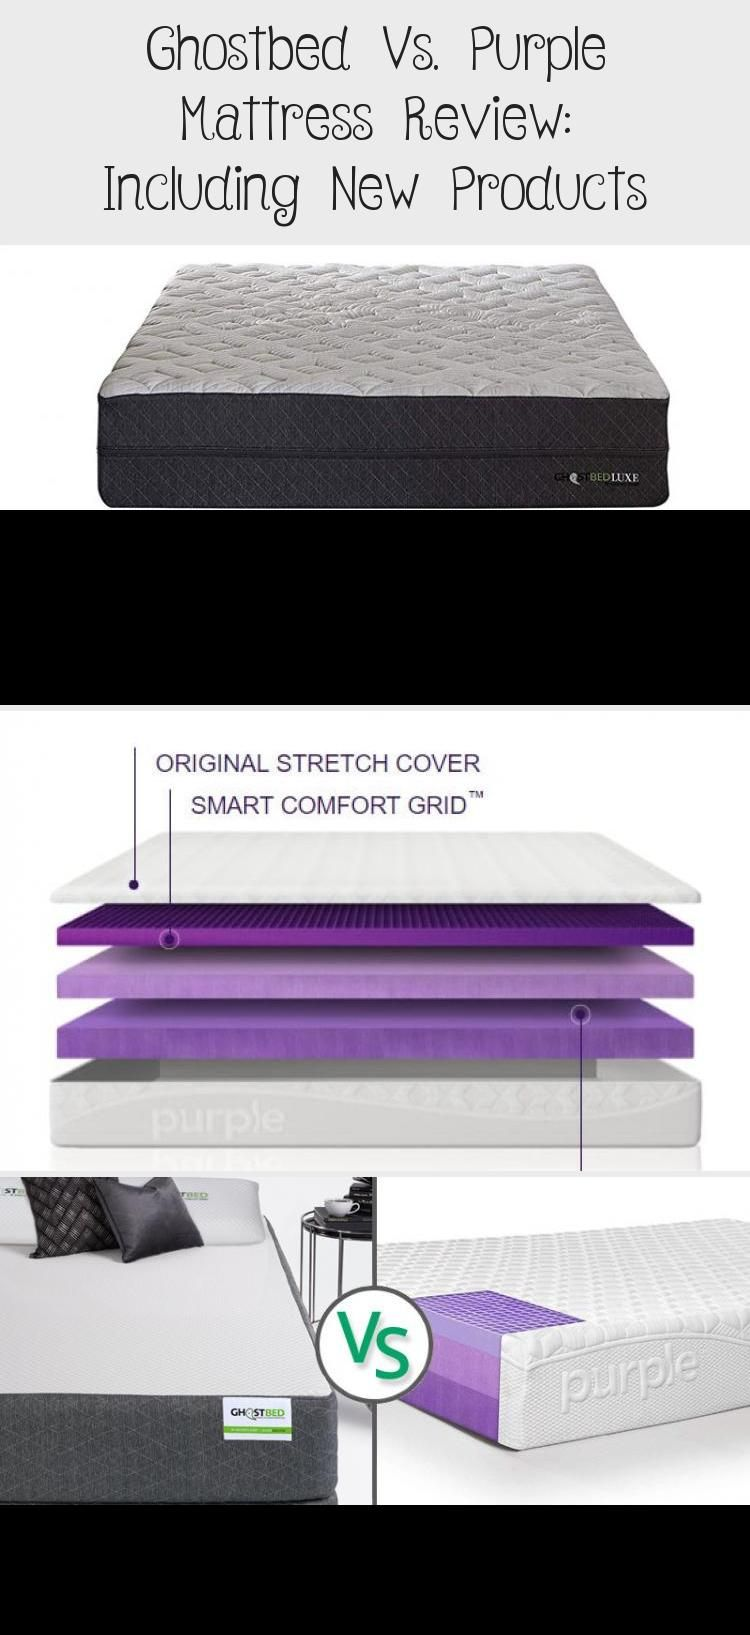 Ghostbed Vs Purple Mattress Review Purplemattressplatform Purplemattressreview Purplemattressbed Mattresses Reviews Purple Mattress Purple Mattress Reviews